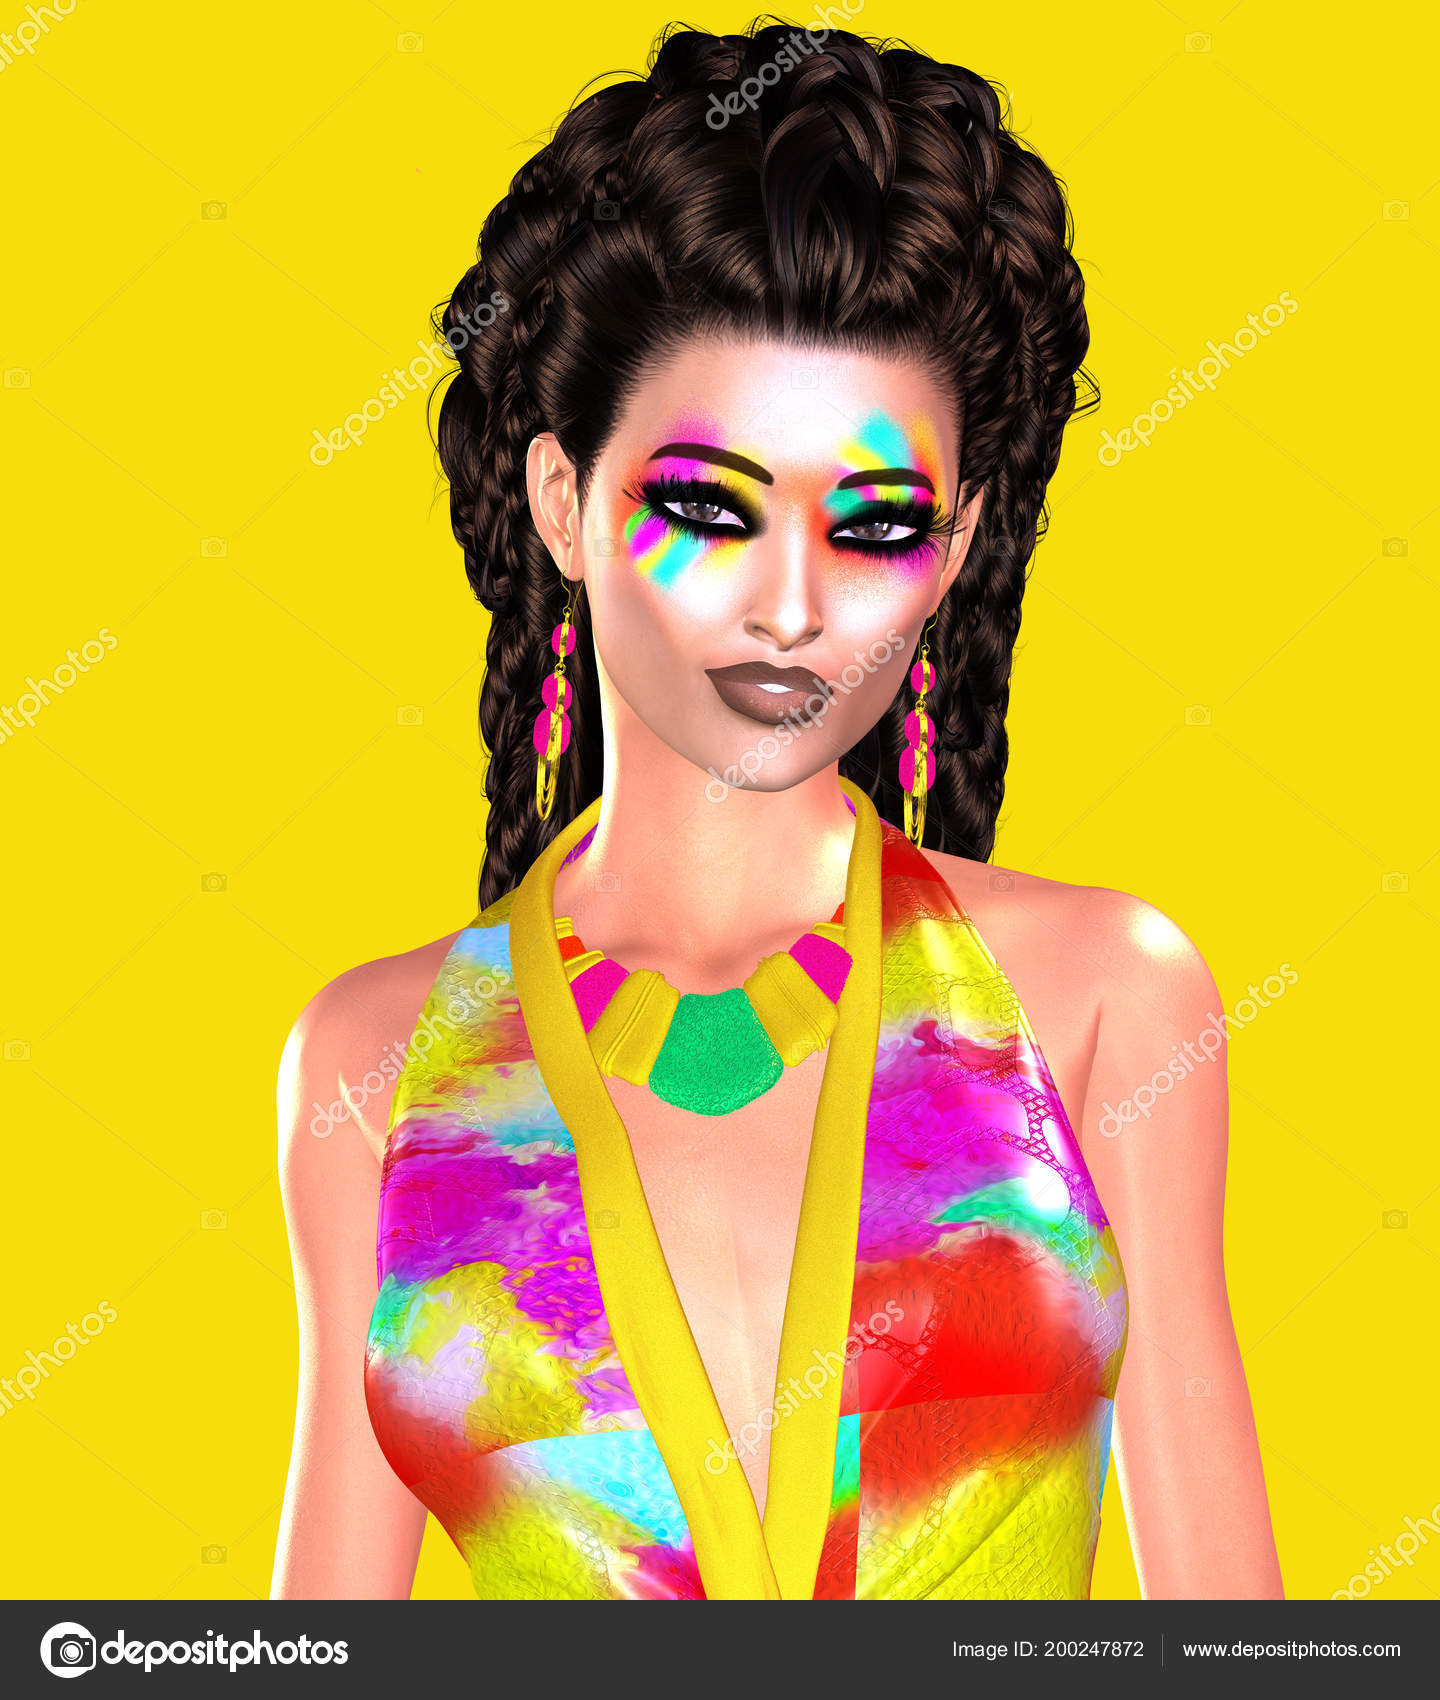 Trendy Fashion clothing and hairstyle scene with bold colors. Woman wearing  a sexy floral top against a bright yellow colored background.